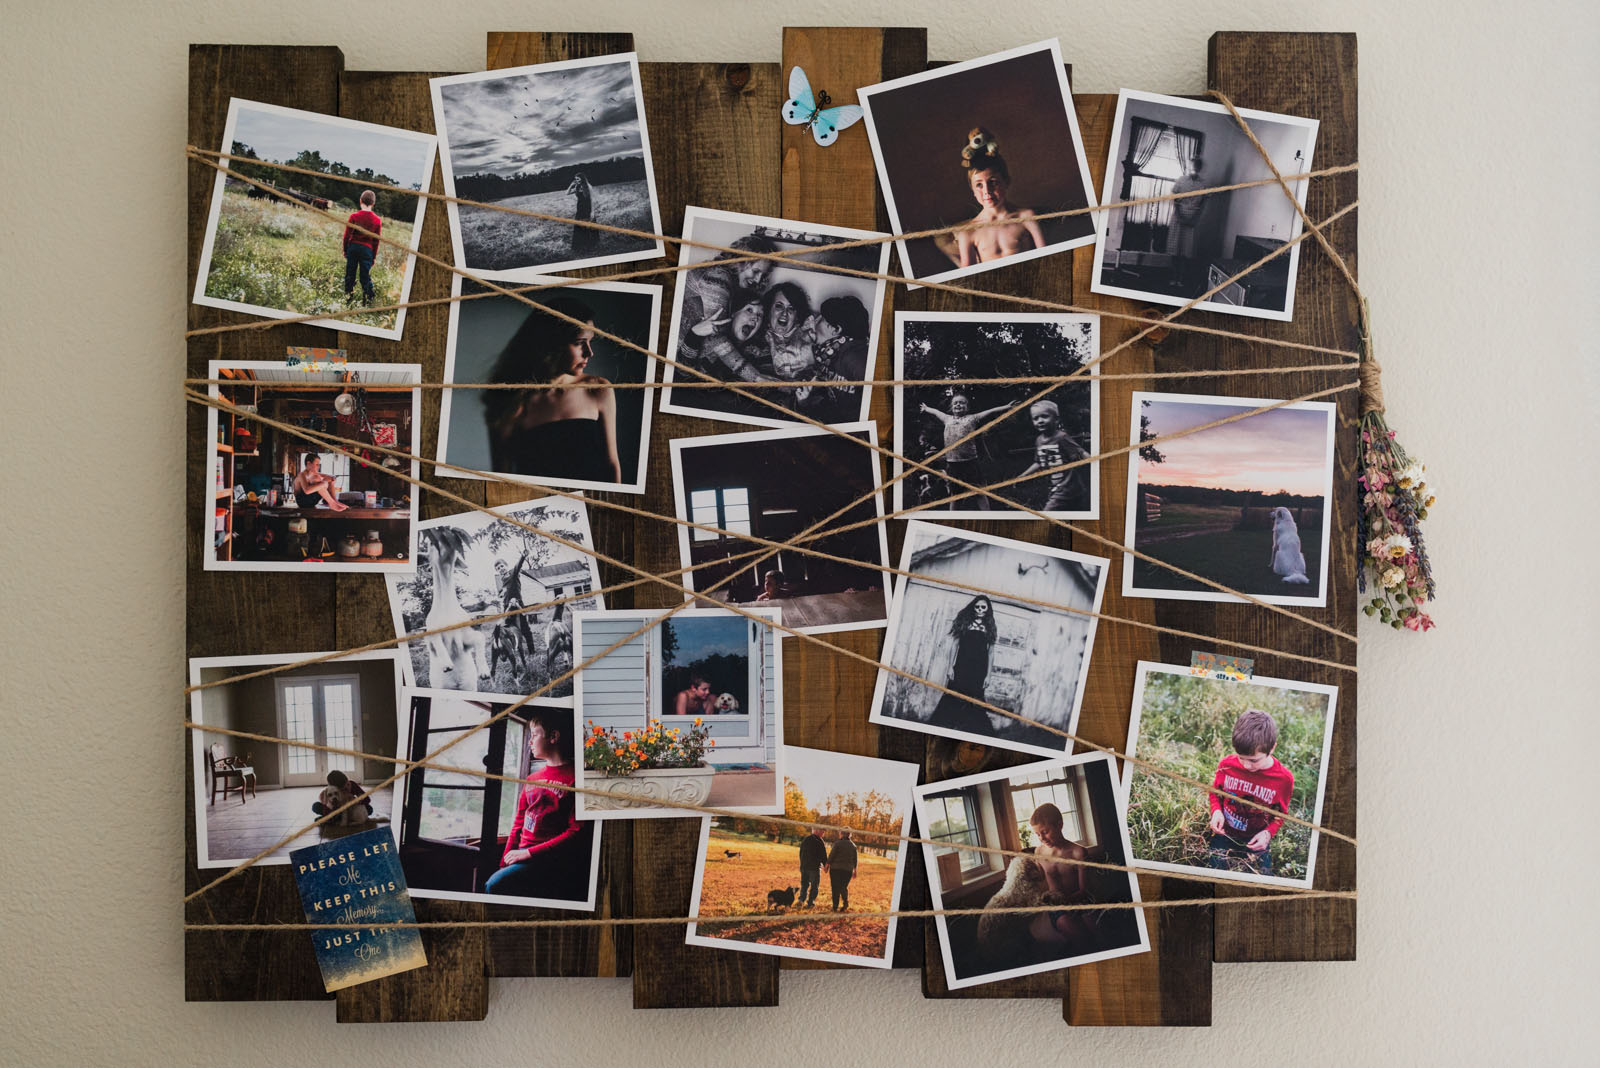 If you're like me and shoot almost daily, then you have so many you could never print and display them all. Over time I started looking for ways to display them that wouldn't break the bank and would allow me to change them out often and easily.